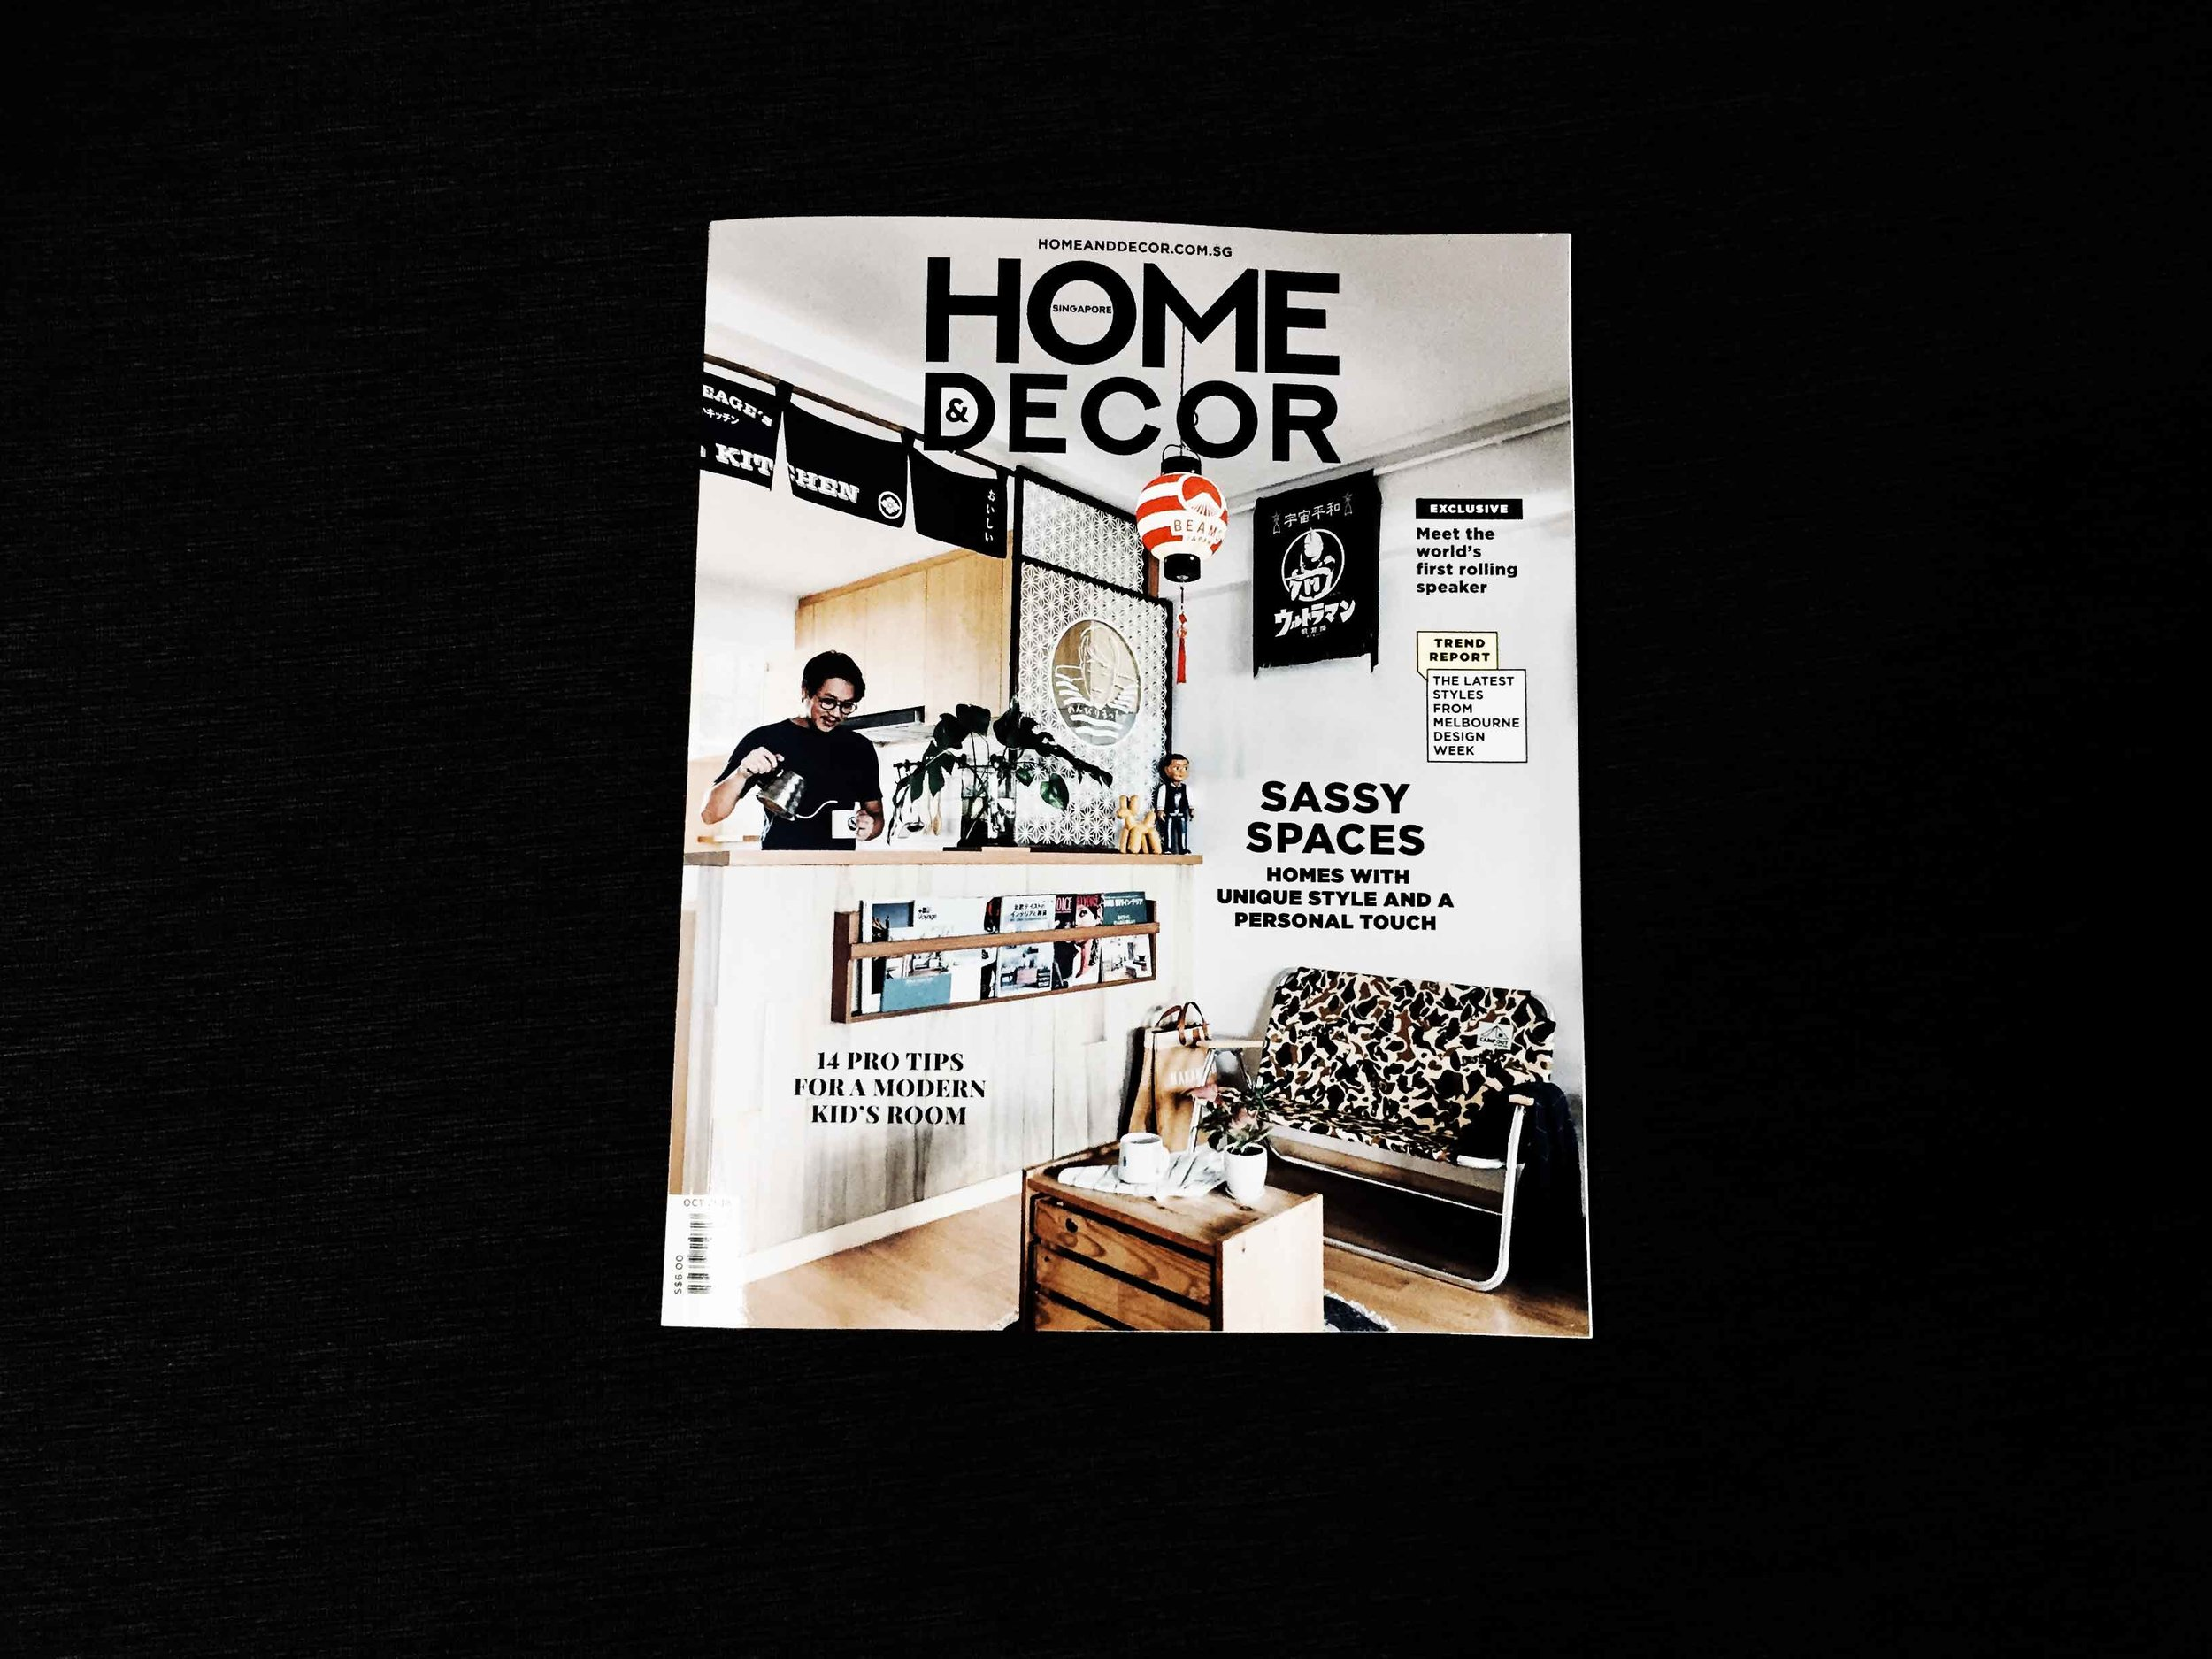 Aaron-Home-&-Decor-adjusted-_cover.jpg